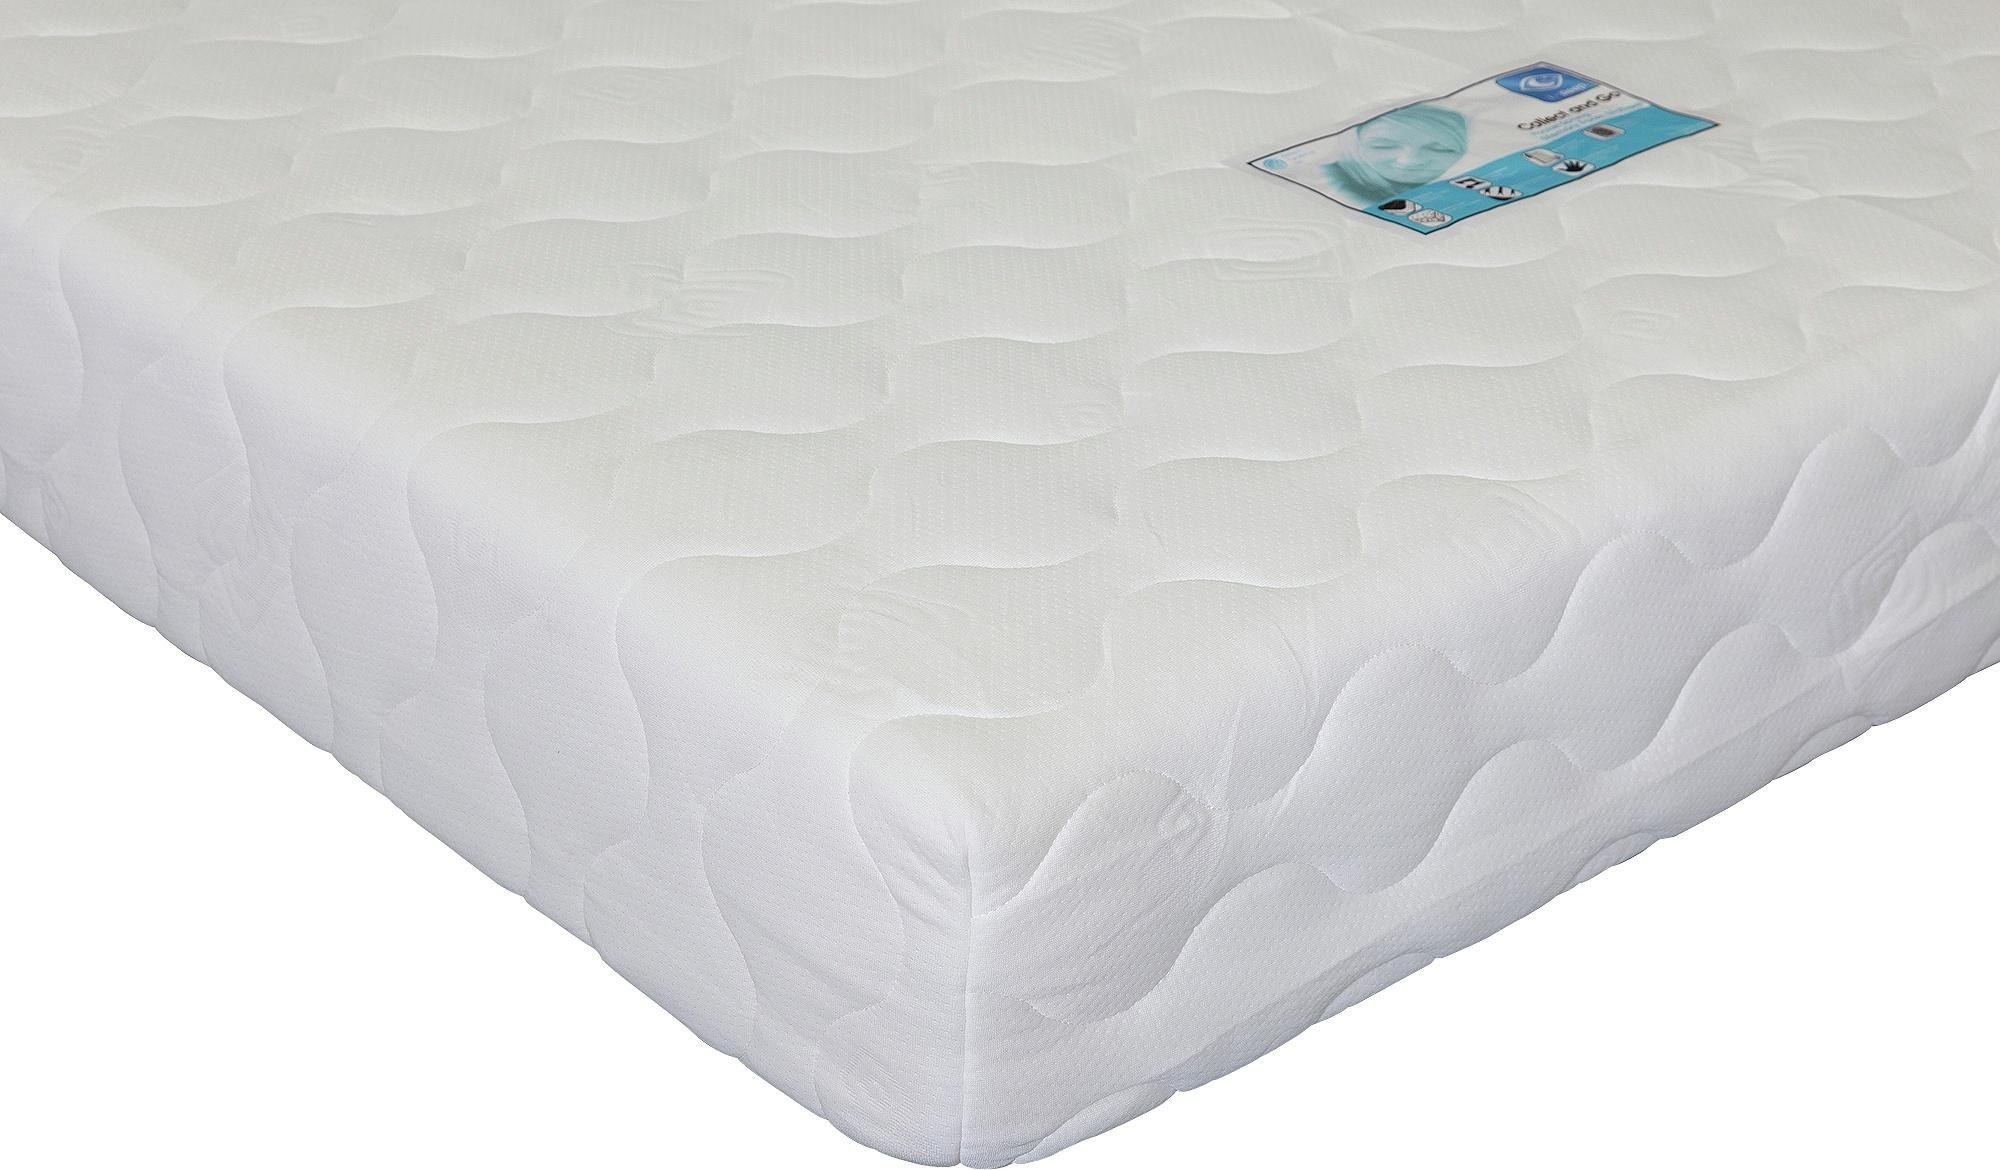 Image of I-Sleep - Collect and Go Pocket - Kingsize Memory Foam Mattress